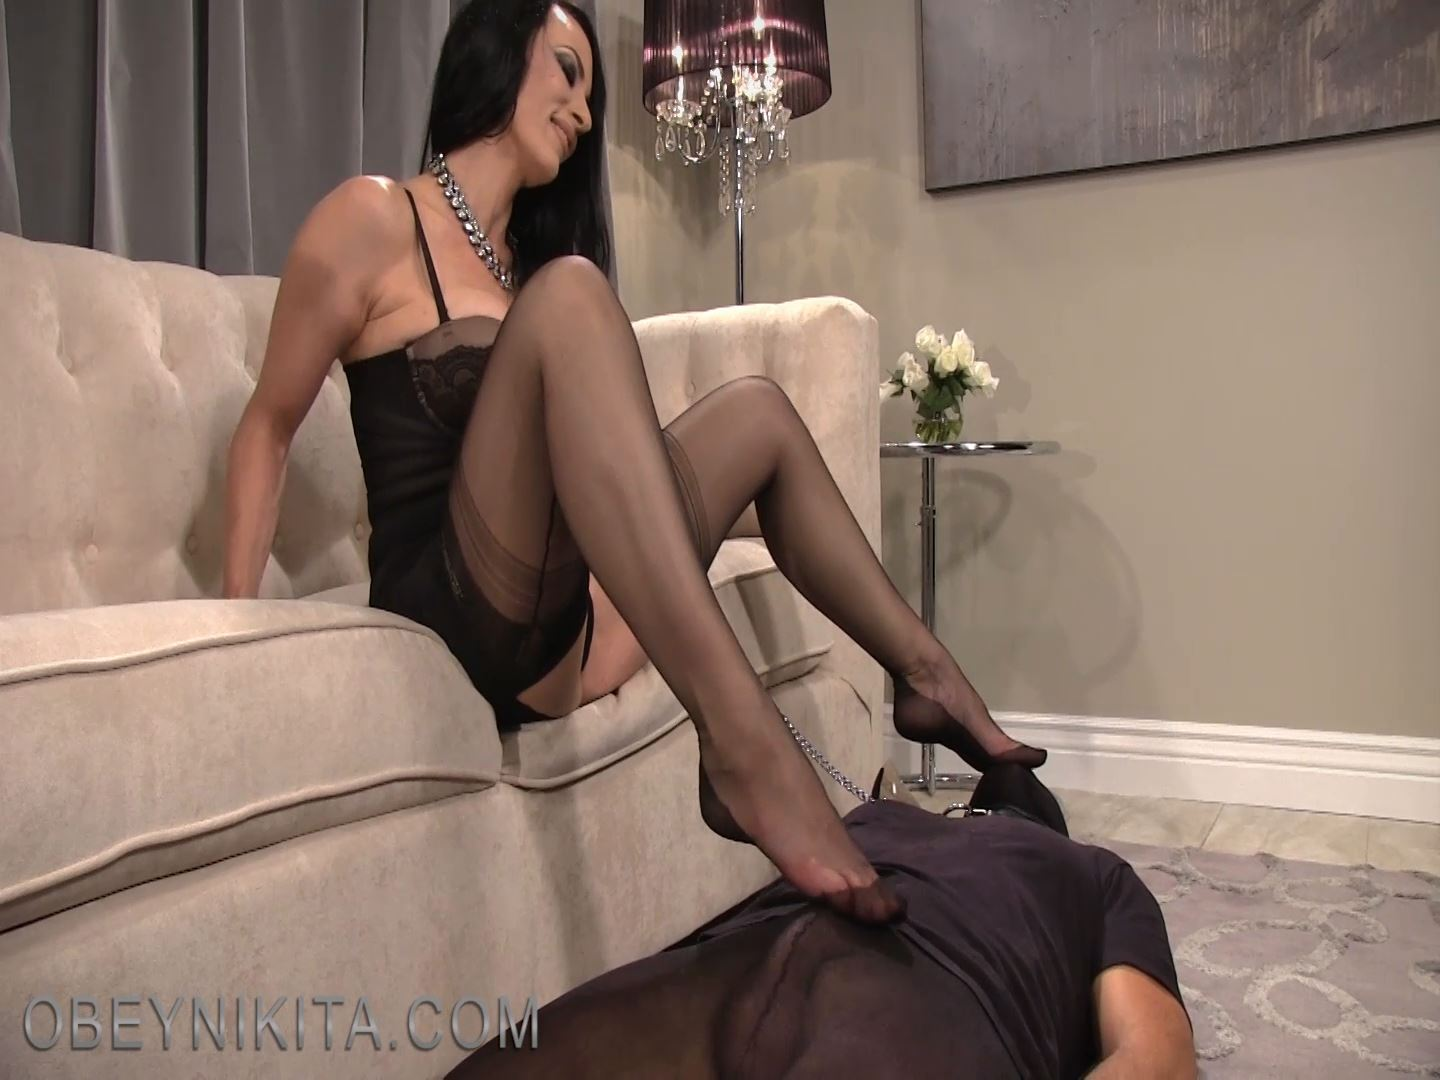 Mistress Nikita In Scene: Hosed Whore 2 - OBEYNIKITA - FULL HD/1080p/MP4